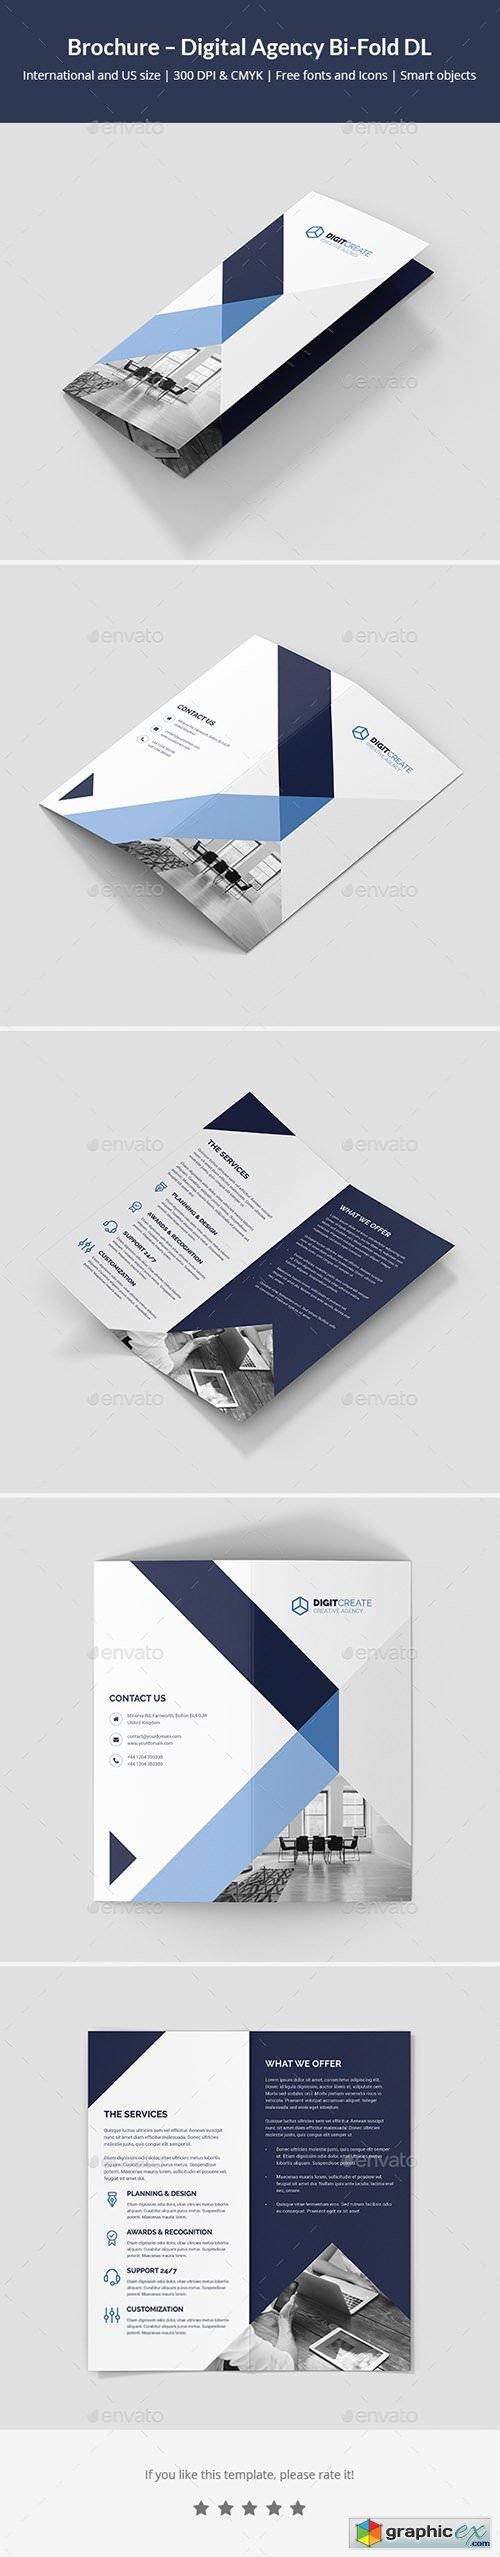 Brochure � Digital Agency Bi-Fold DL